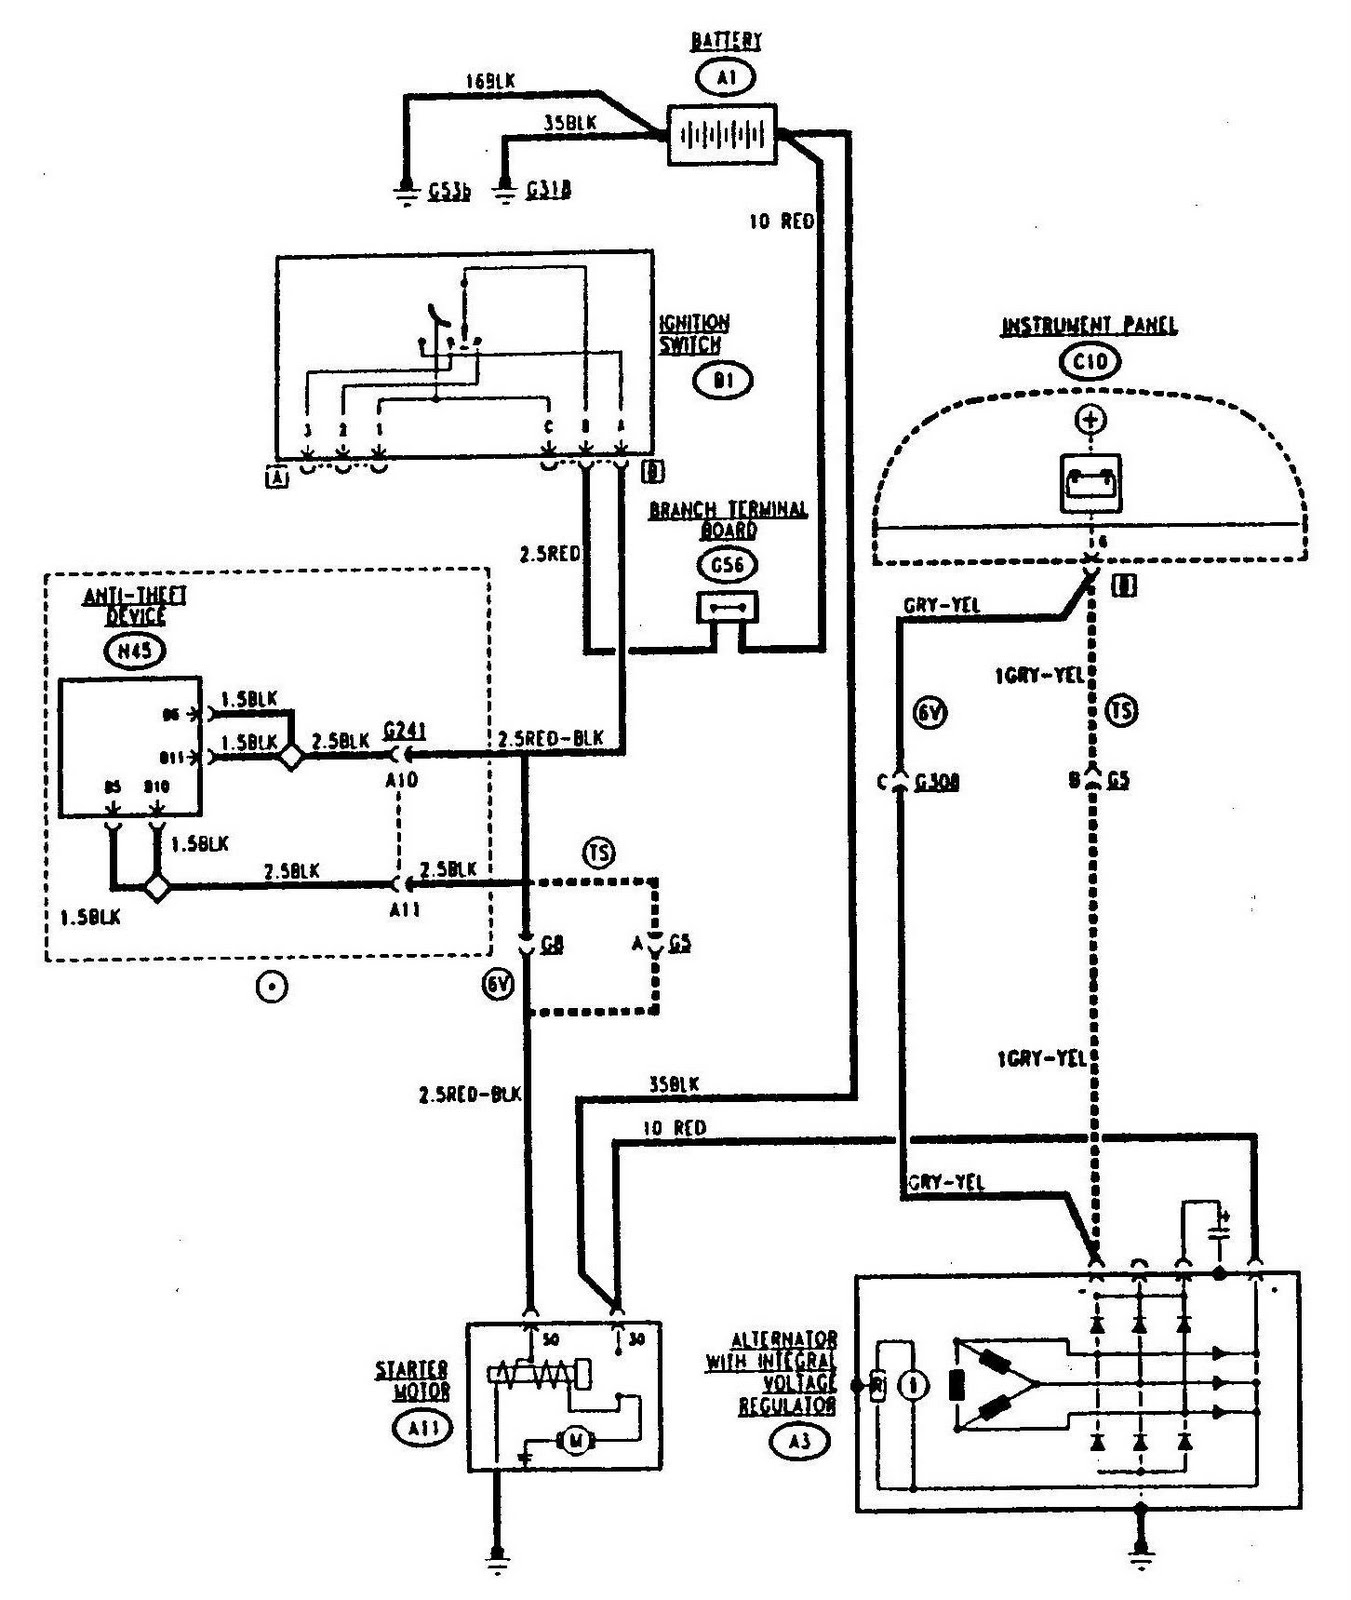 Alfa Romeo 155 Starting And Charging Circuit Diagram Wiringdiagrams Wiring Schematics